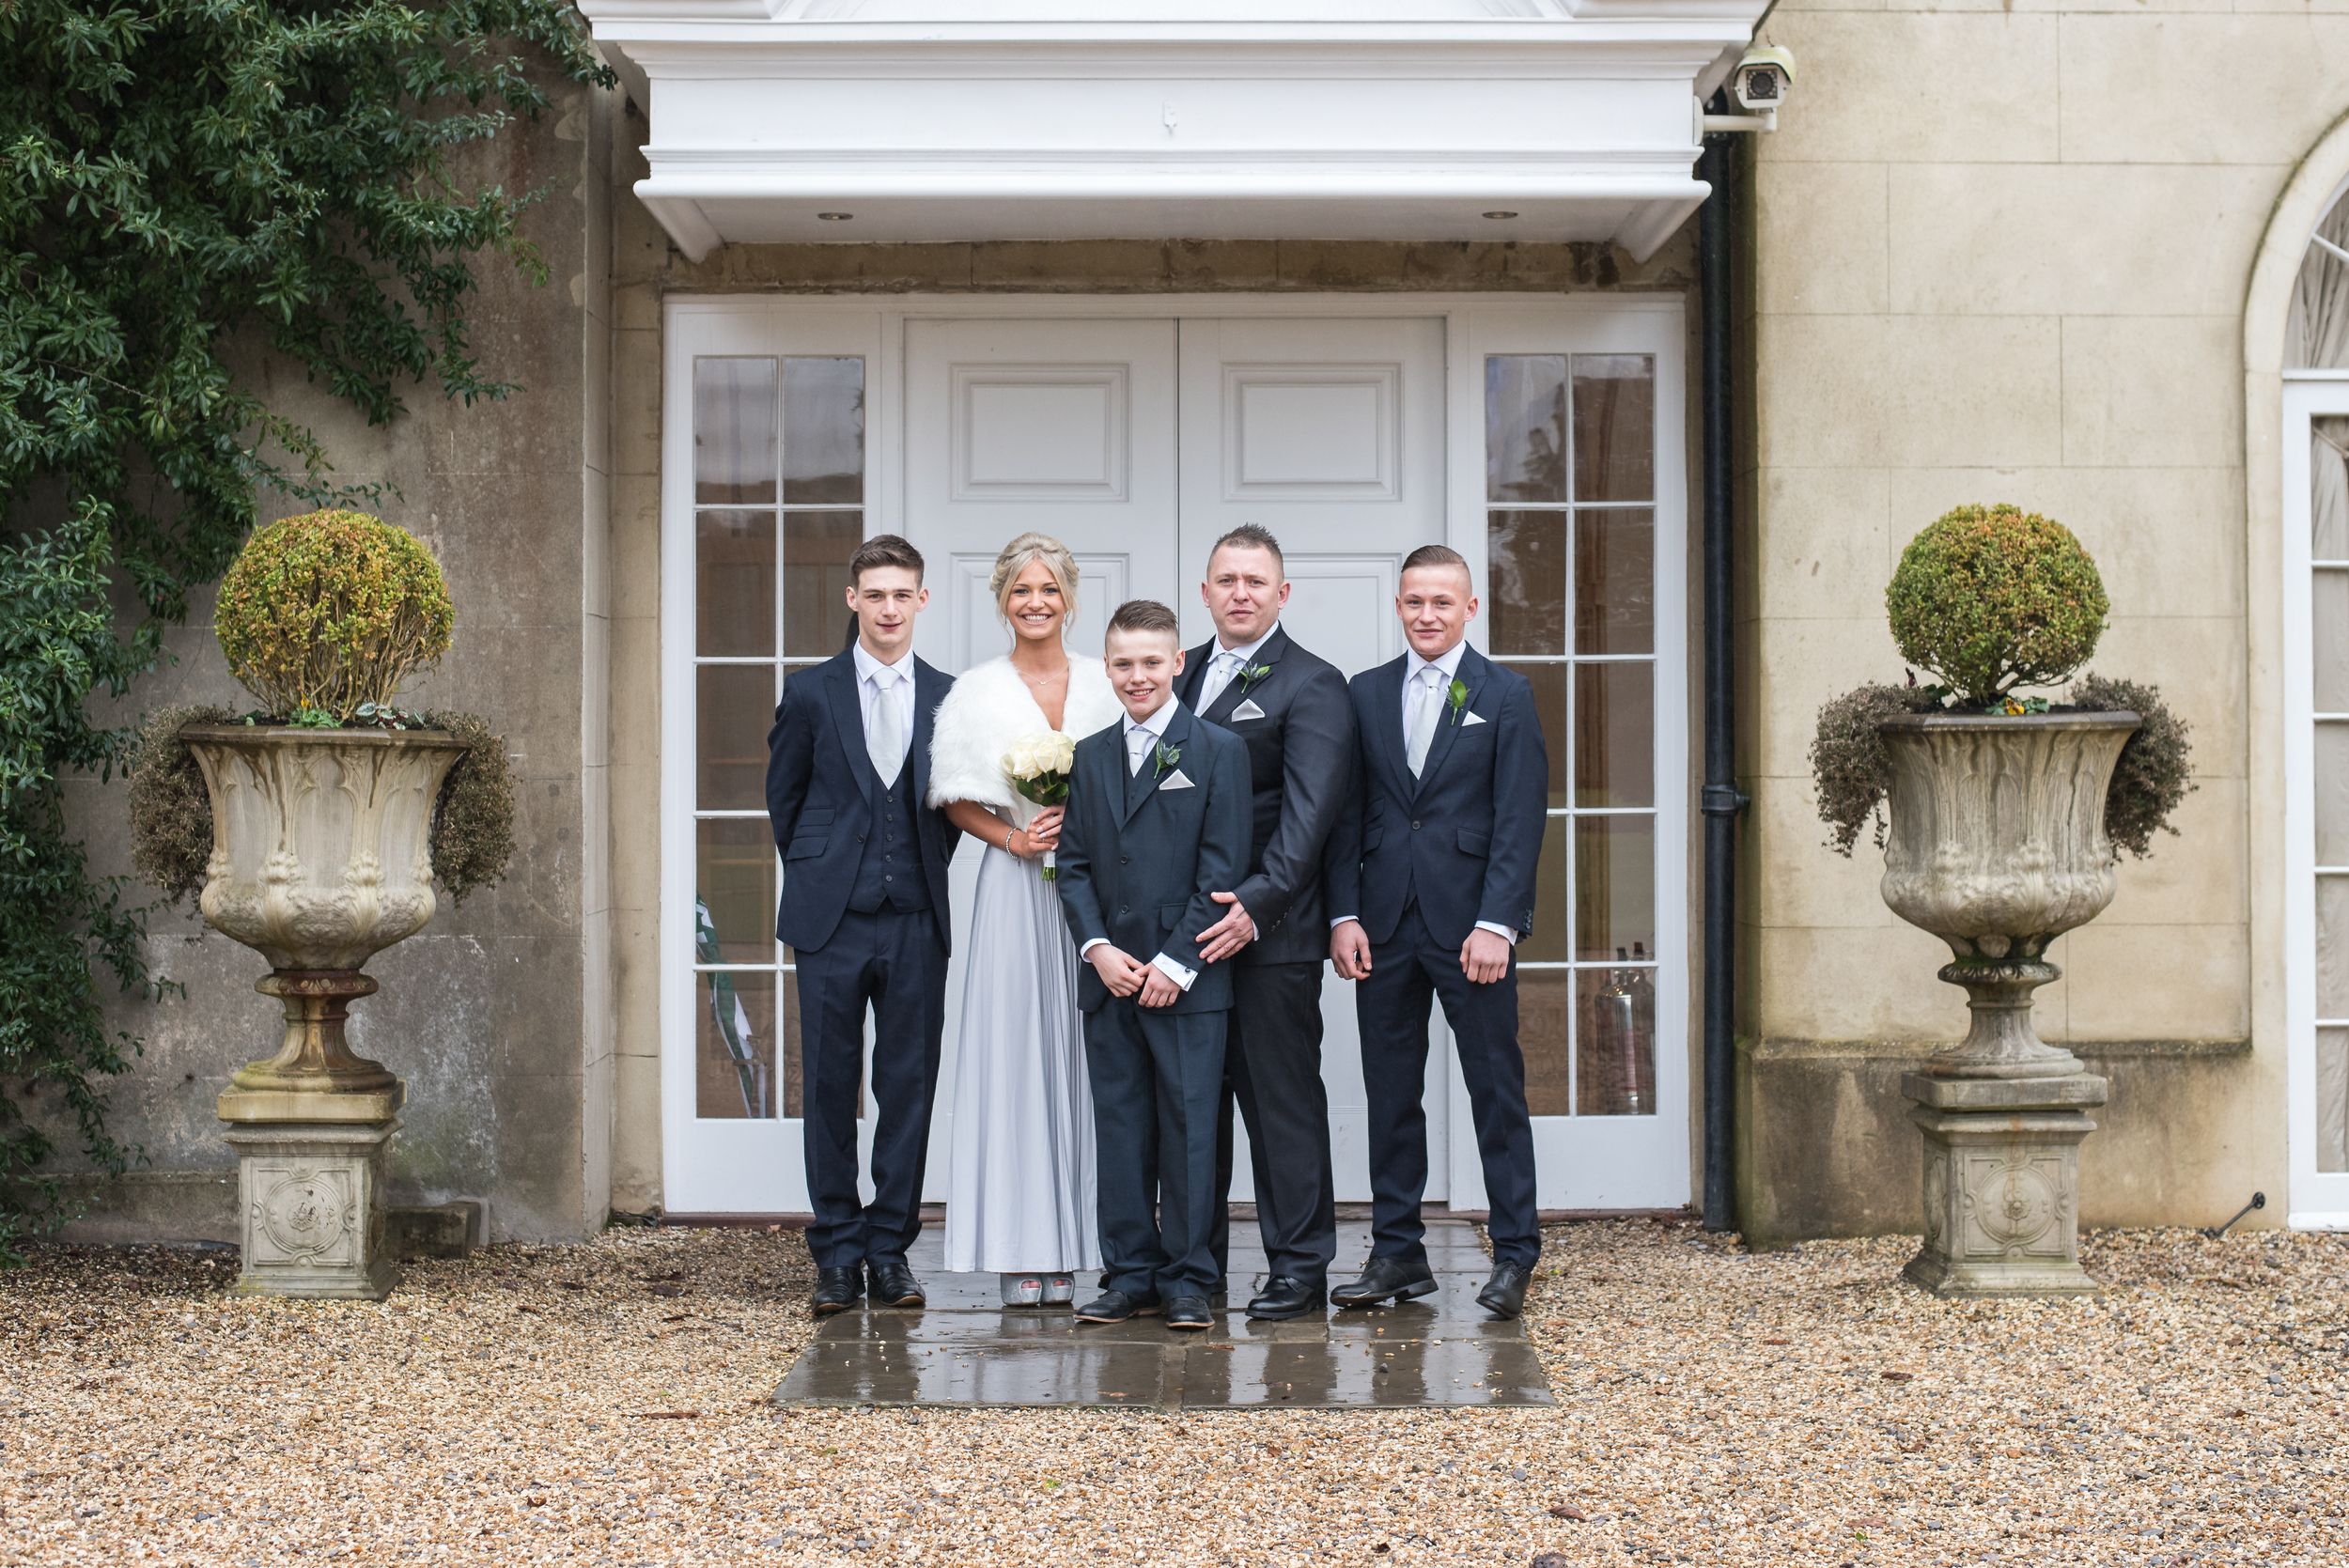 Fleet wedding photographer / Northbrook Park wedding photographer